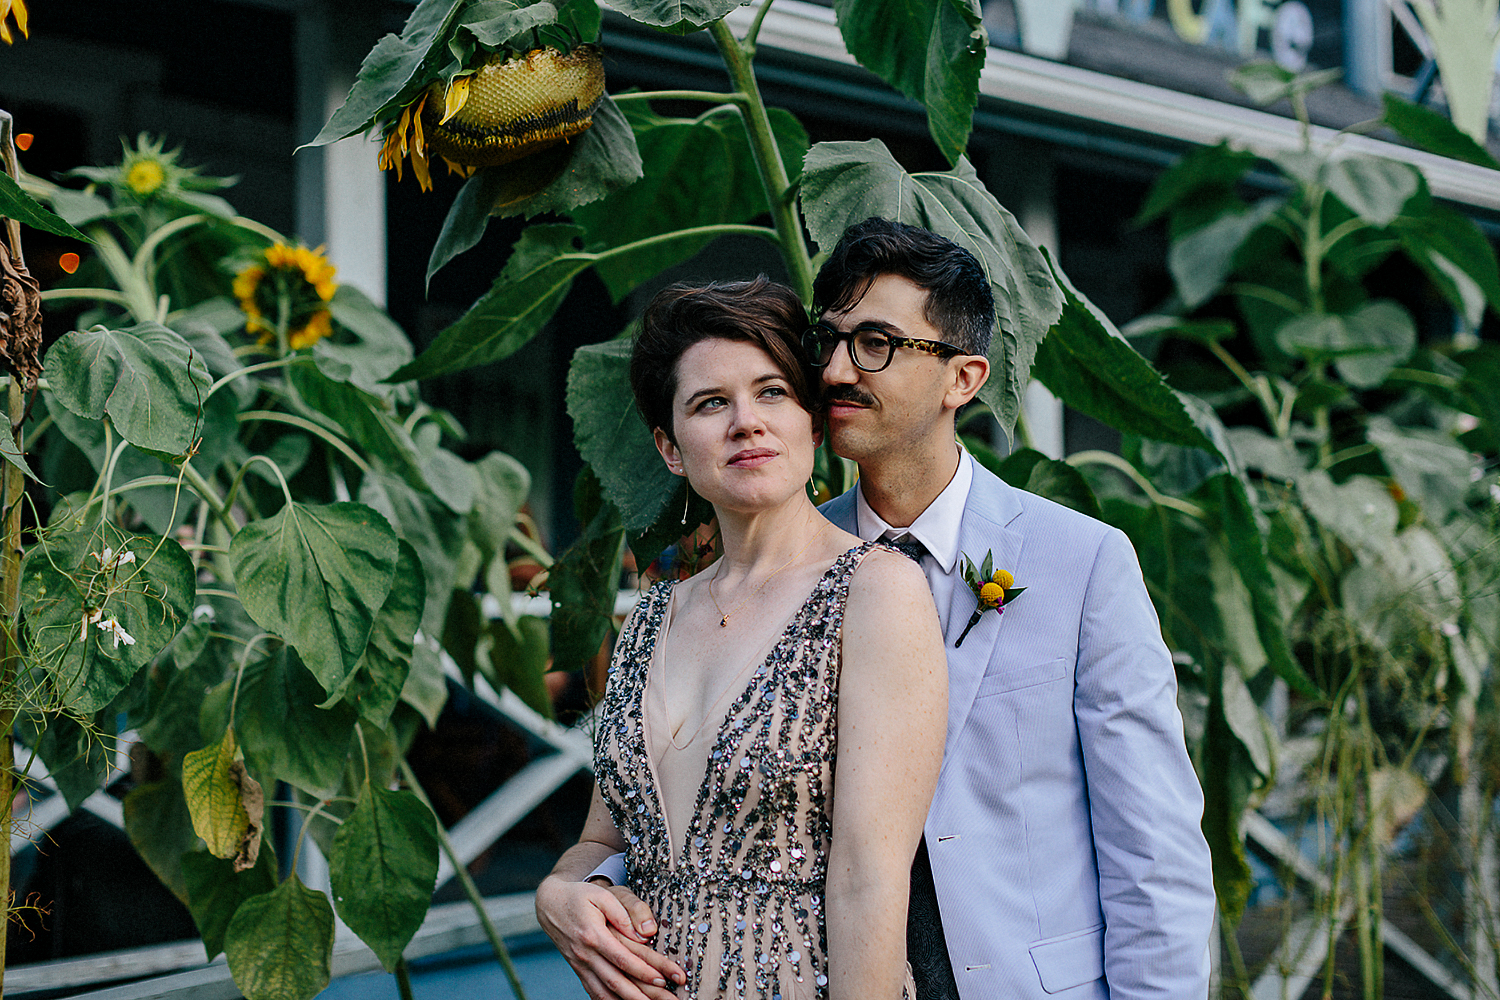 Best-Wedding-Photographers-Toronto-with-documentary-style-photojournalistic-wedding-photographer-editorial-cool-hip-timeless-Intimate-Toronto-Island-Cafe-Clubhouse-Wedding-portrait-with-sunflowers.jpg